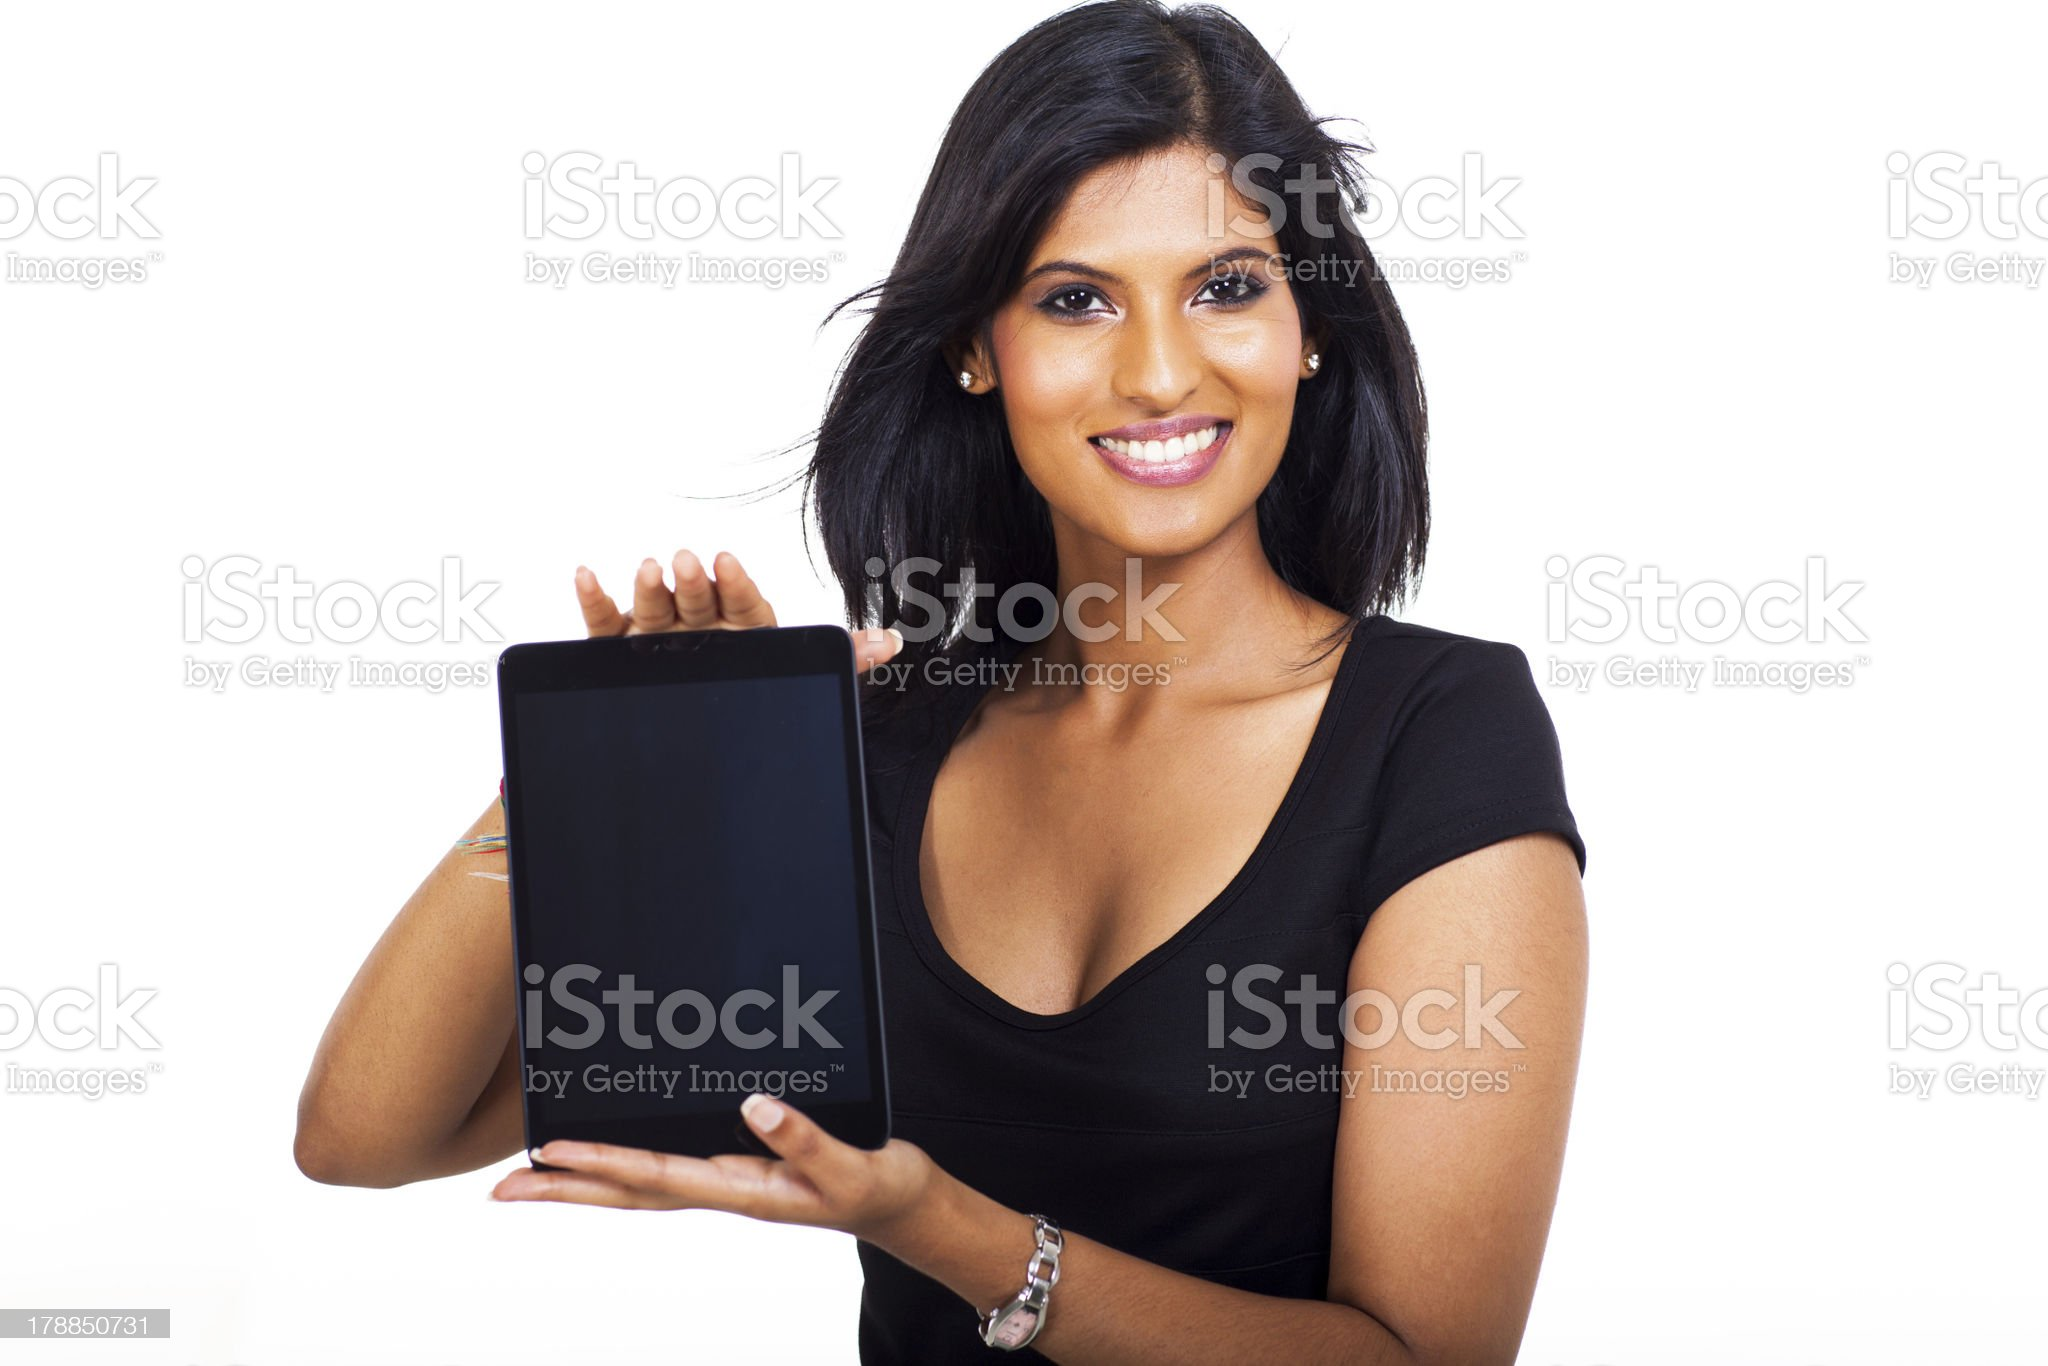 young businesswoman showing tablet computer royalty-free stock photo